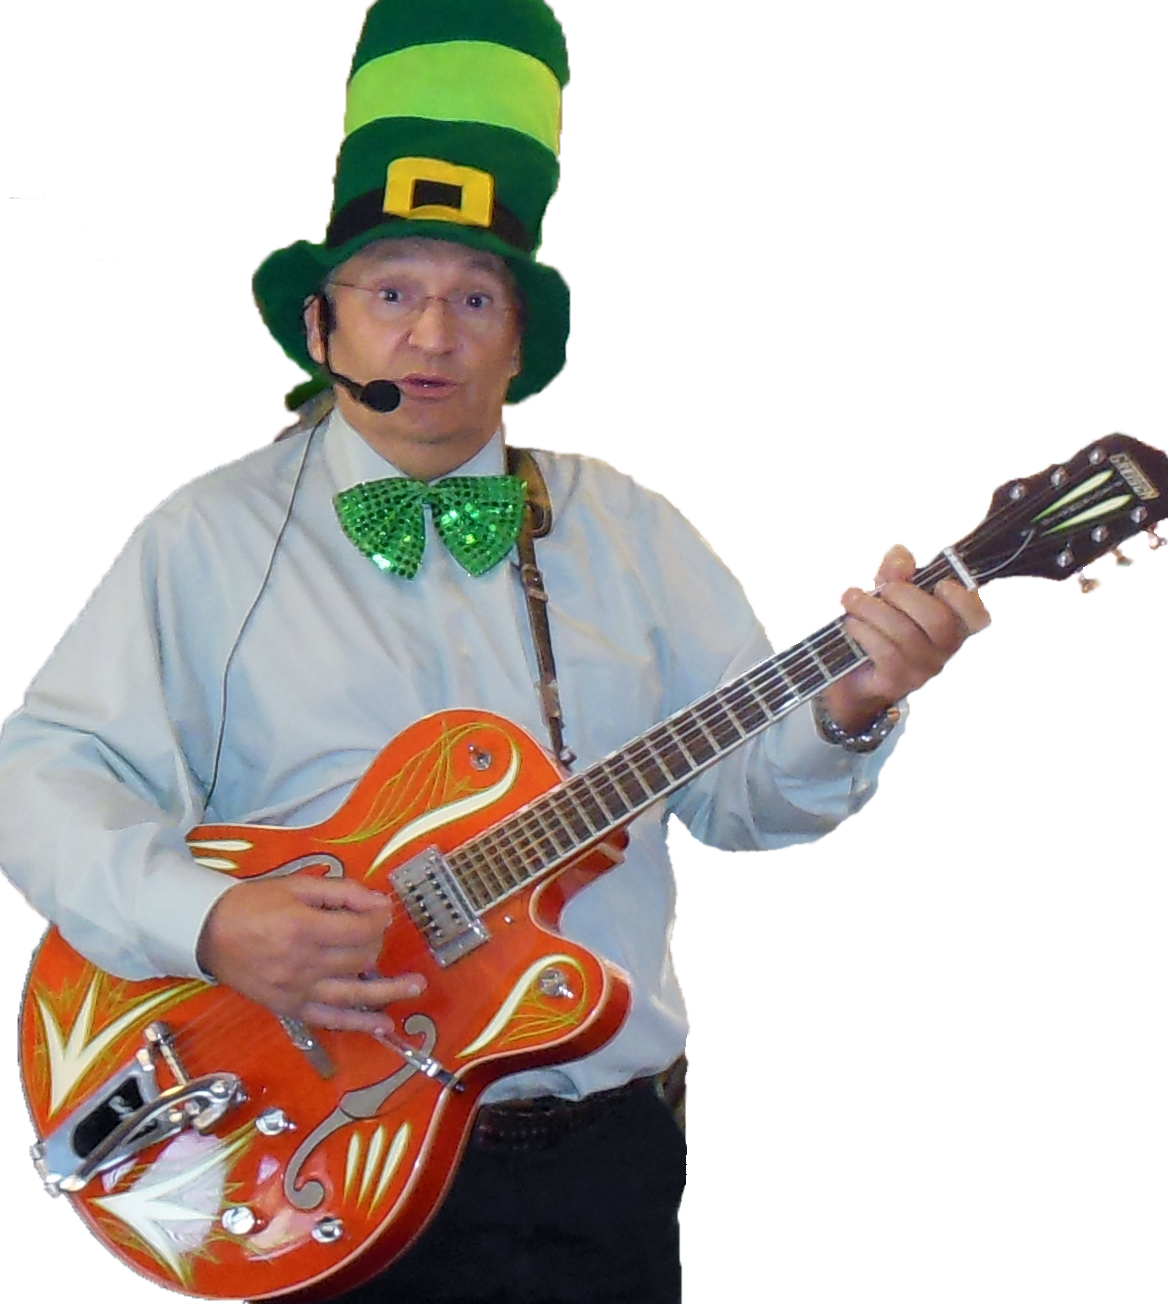 Roger Chartier plays a Gretsch on St Patty's Day